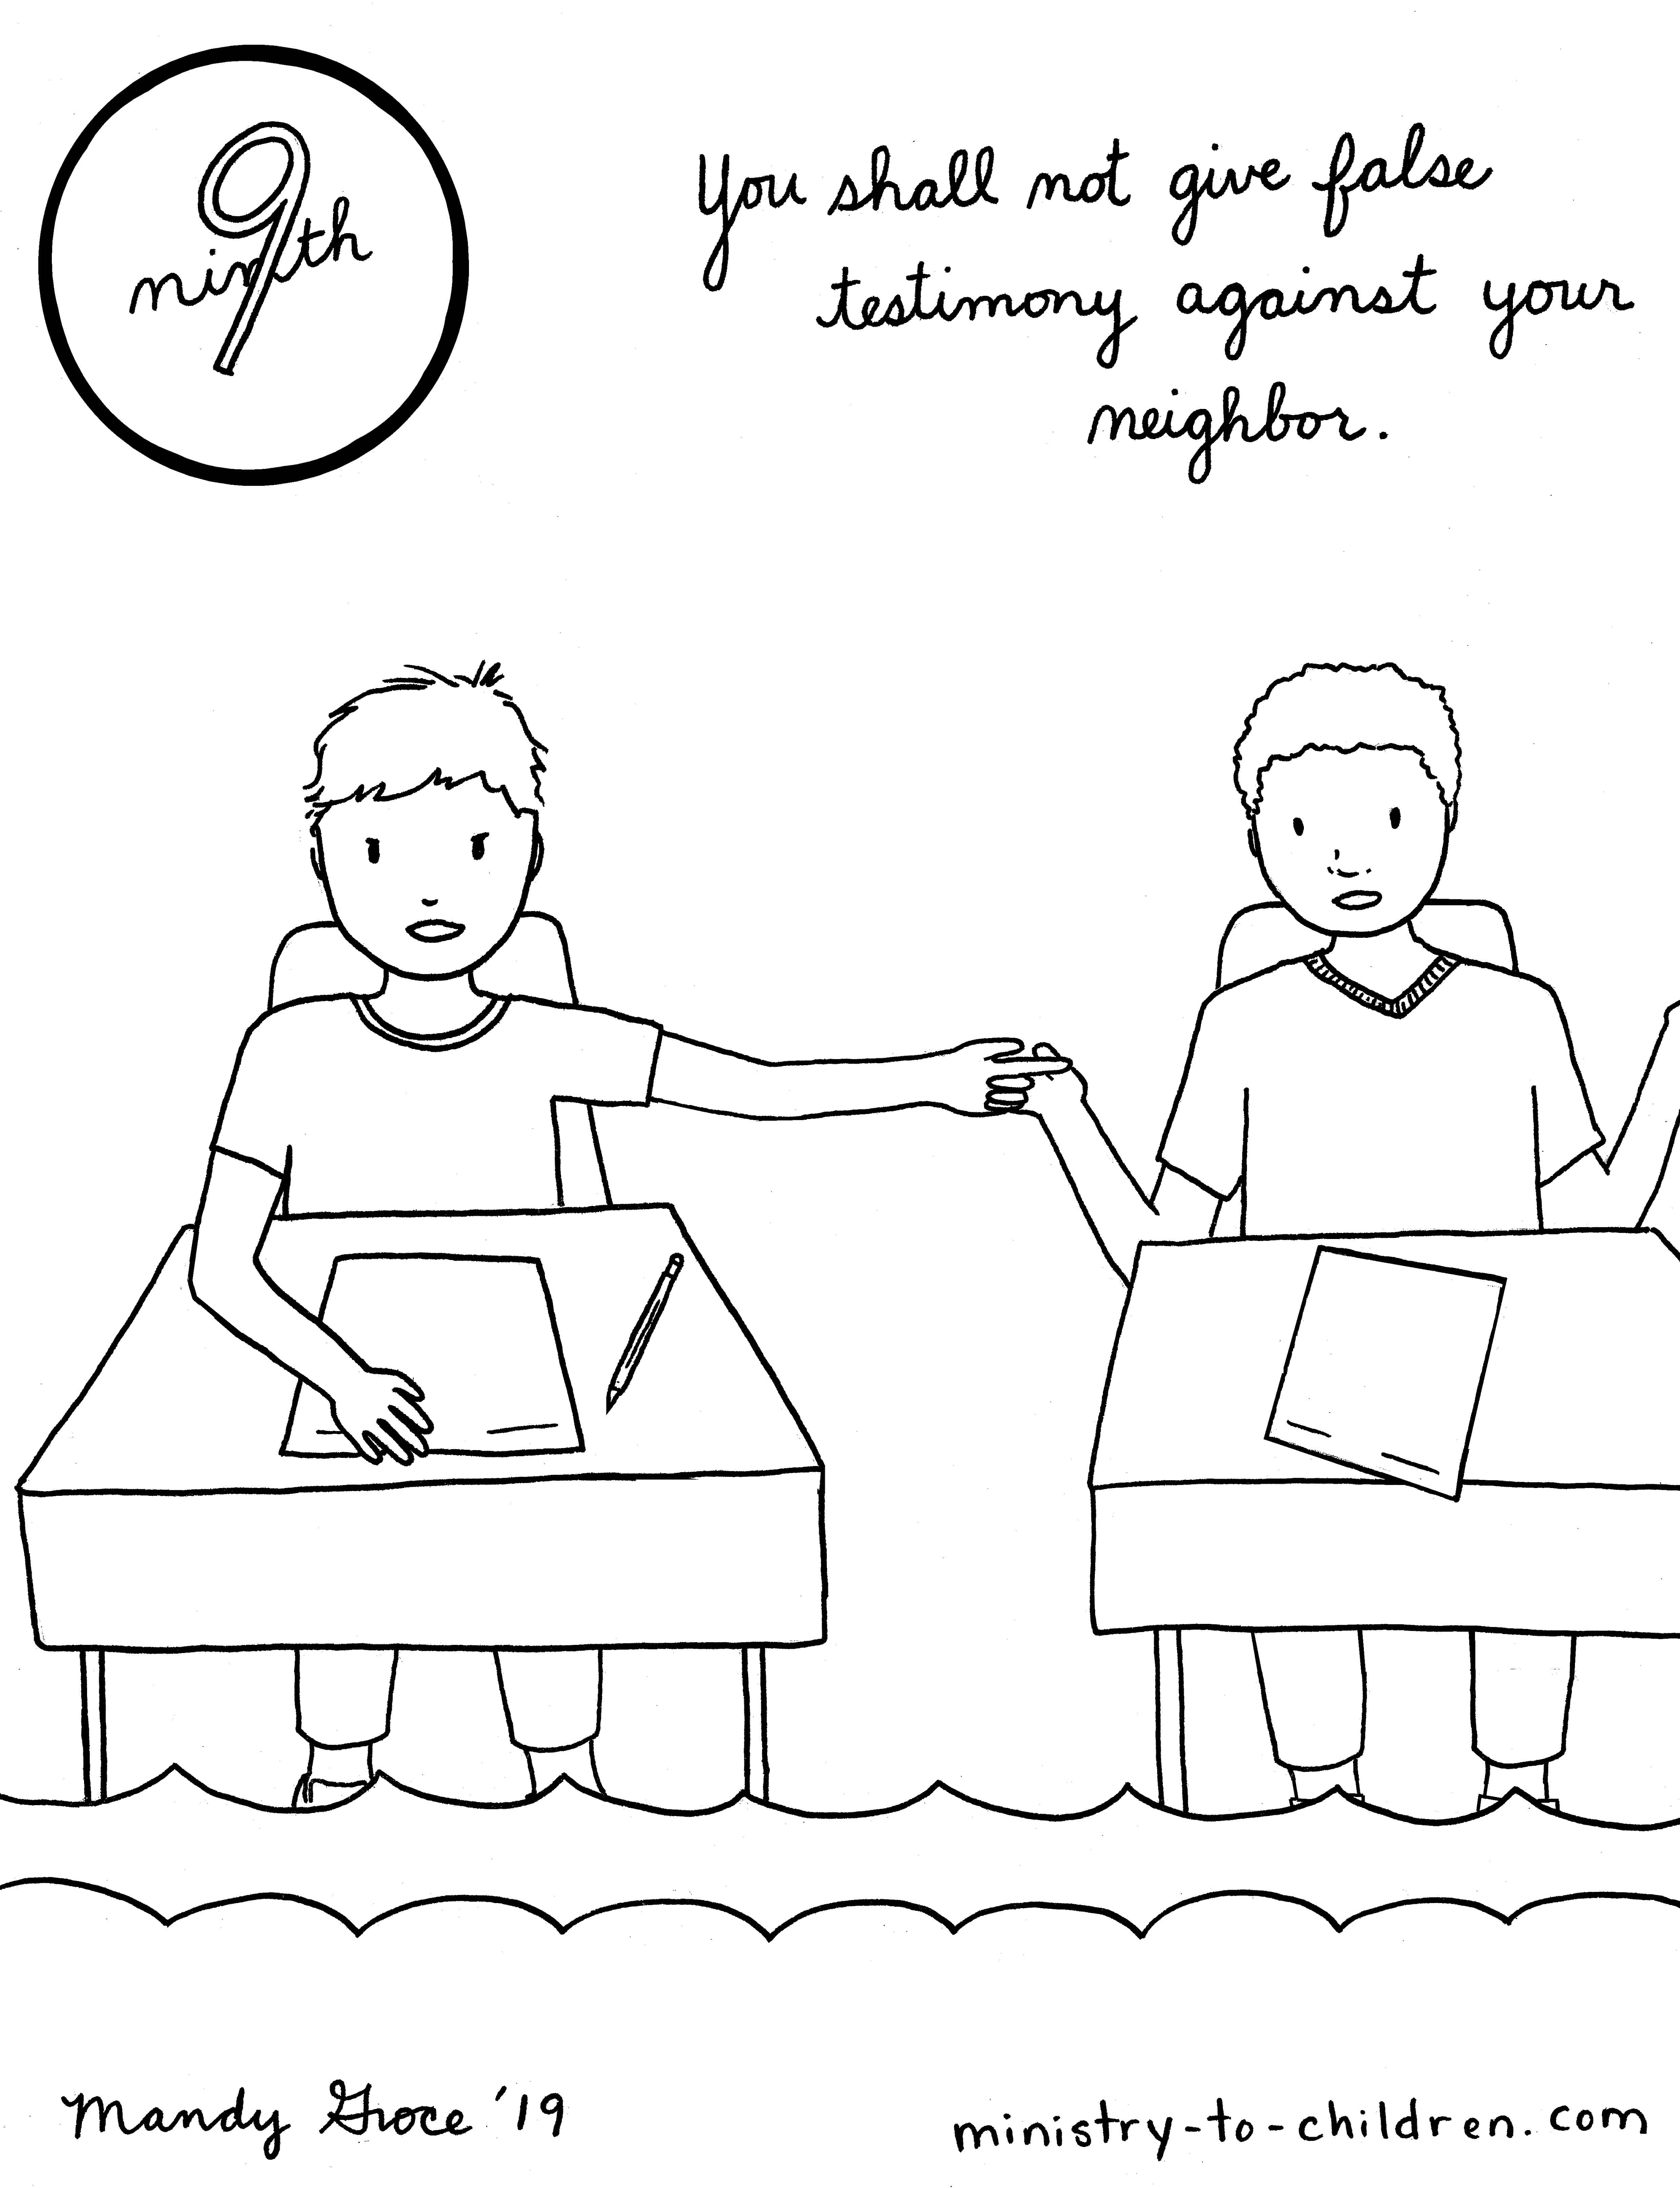 9th Commandment Coloring Page